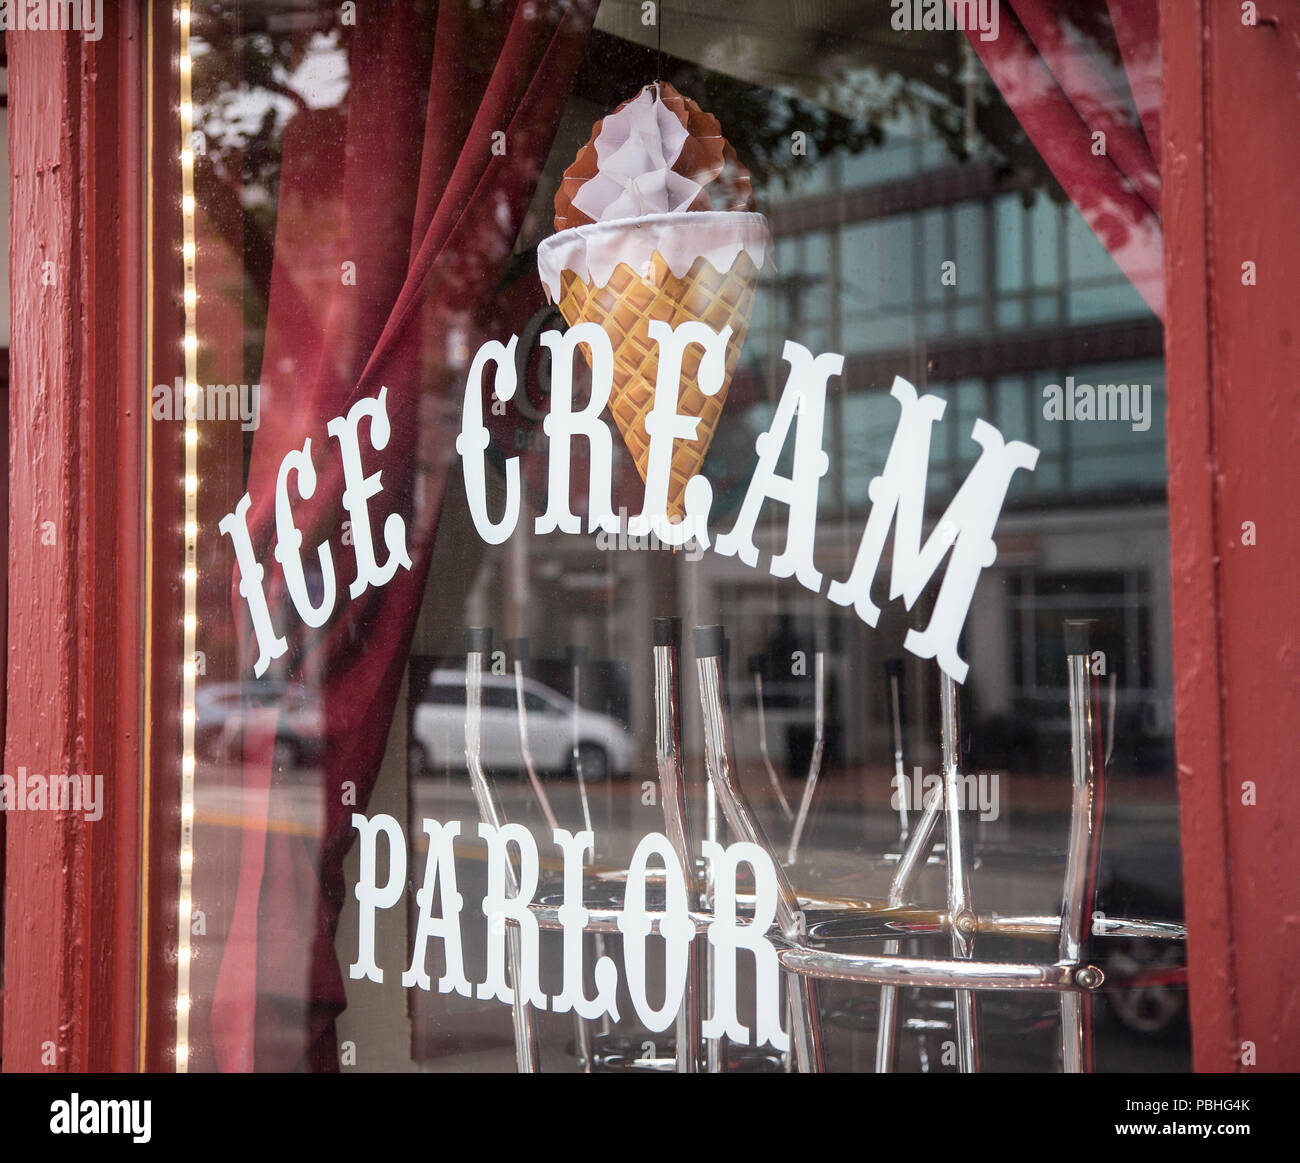 Ice cream parlor sign in a storefront window in Portland, Maine Stock Photo